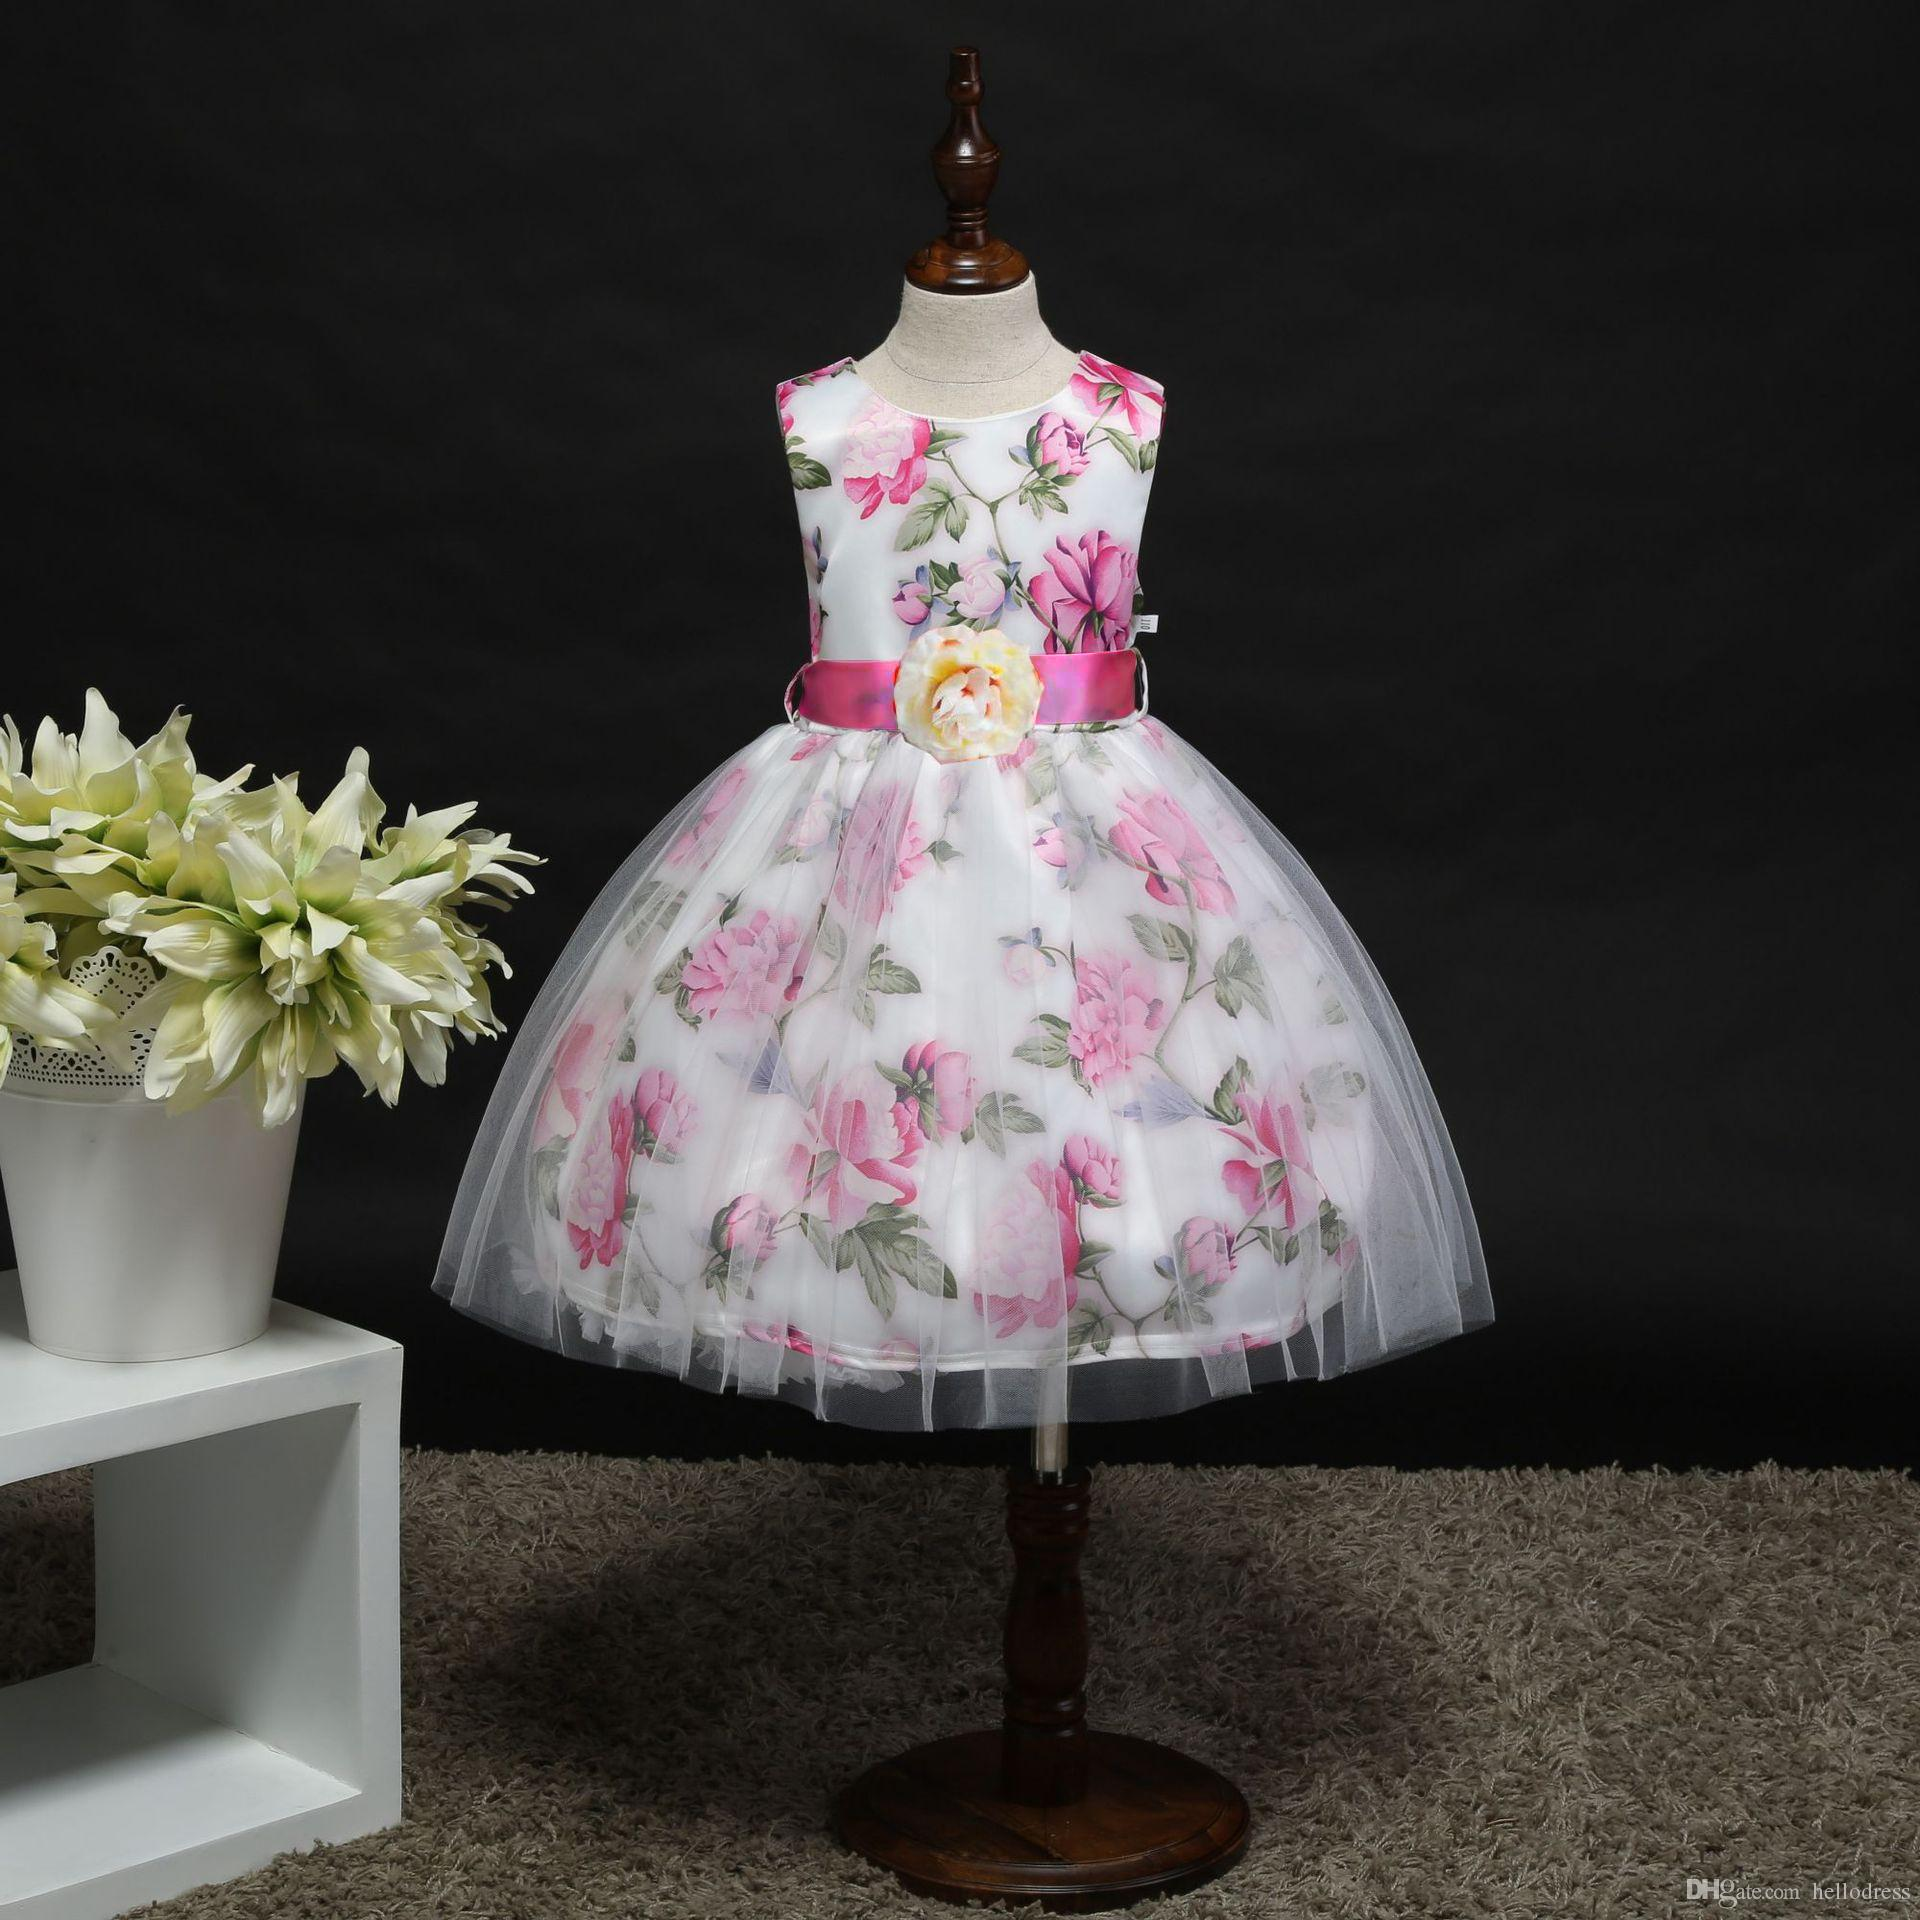 d752030ccfe54 2019 Floral Kids Dresses Pink Sleeveless Little Girs Prom Party Holiday  Birthday Dresses with Handmade Flower Sash Short Ball Gown for Kids